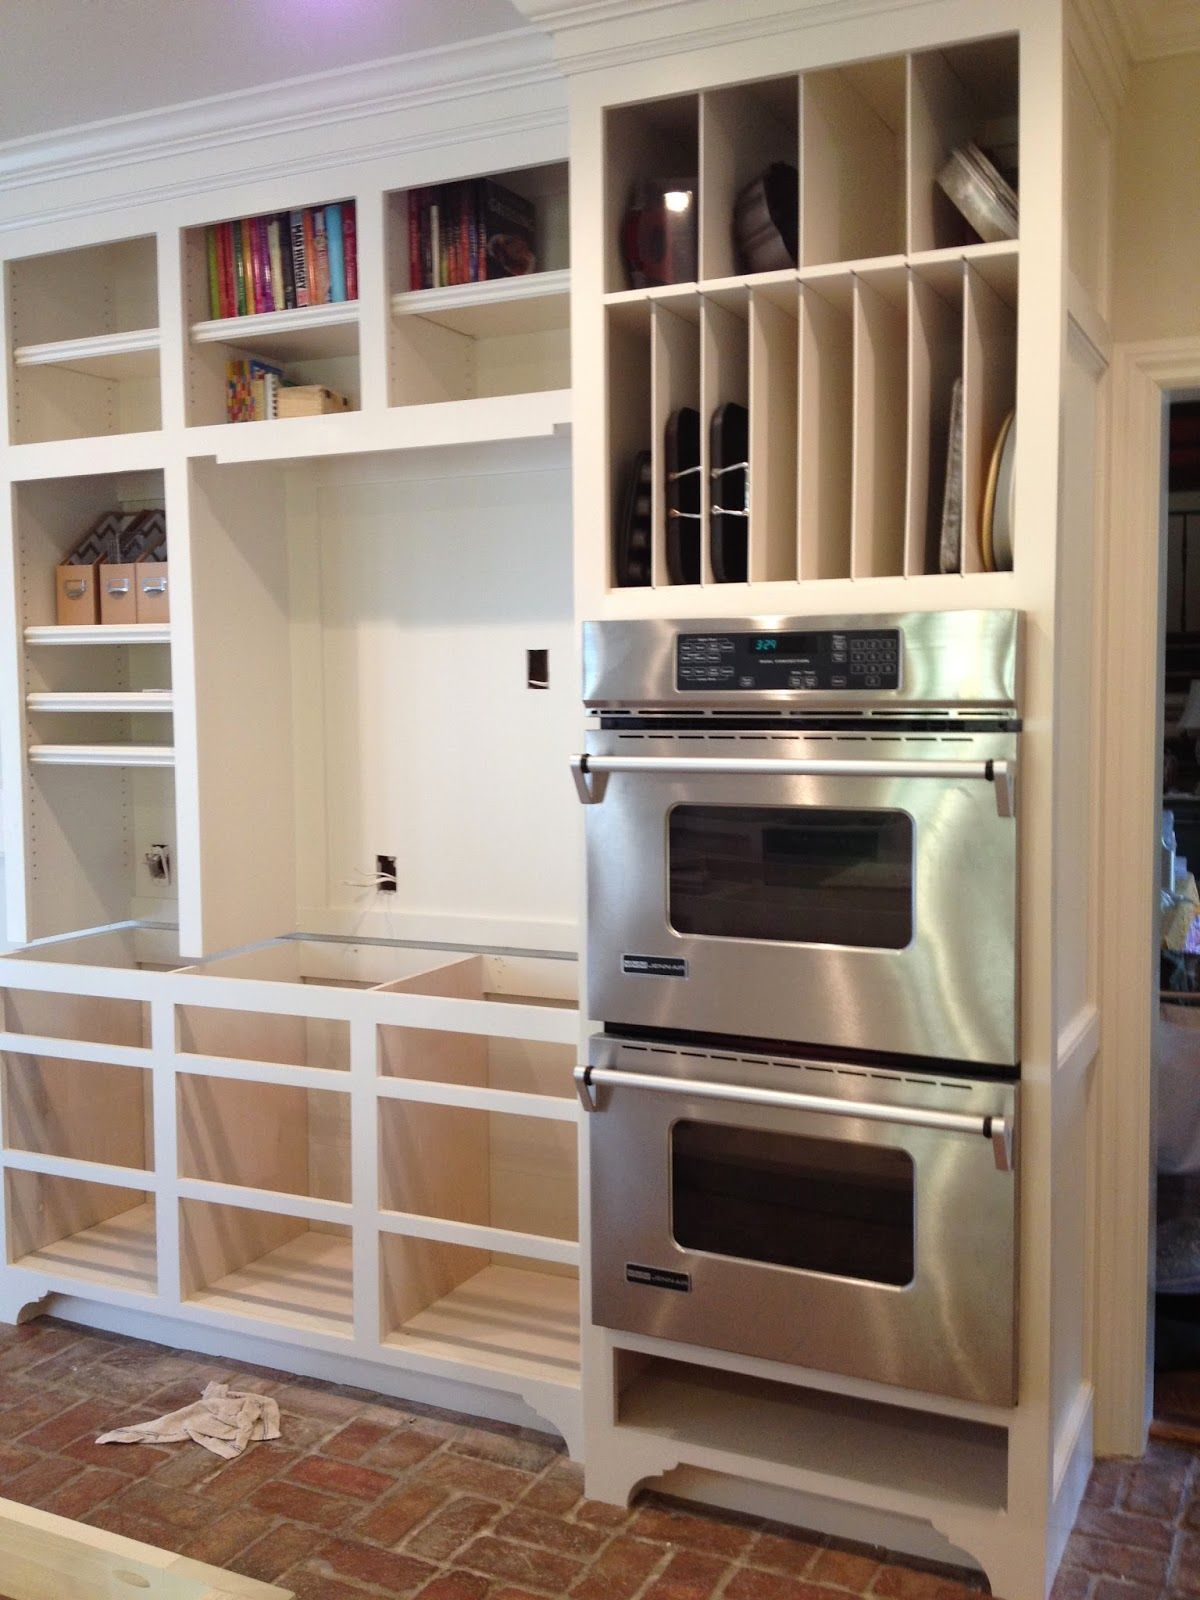 10 Kitchen And Home Decor Items Every 20 Something Needs: If We Ever Re-do The Kitchen, I Want THIS -- Double Ovens